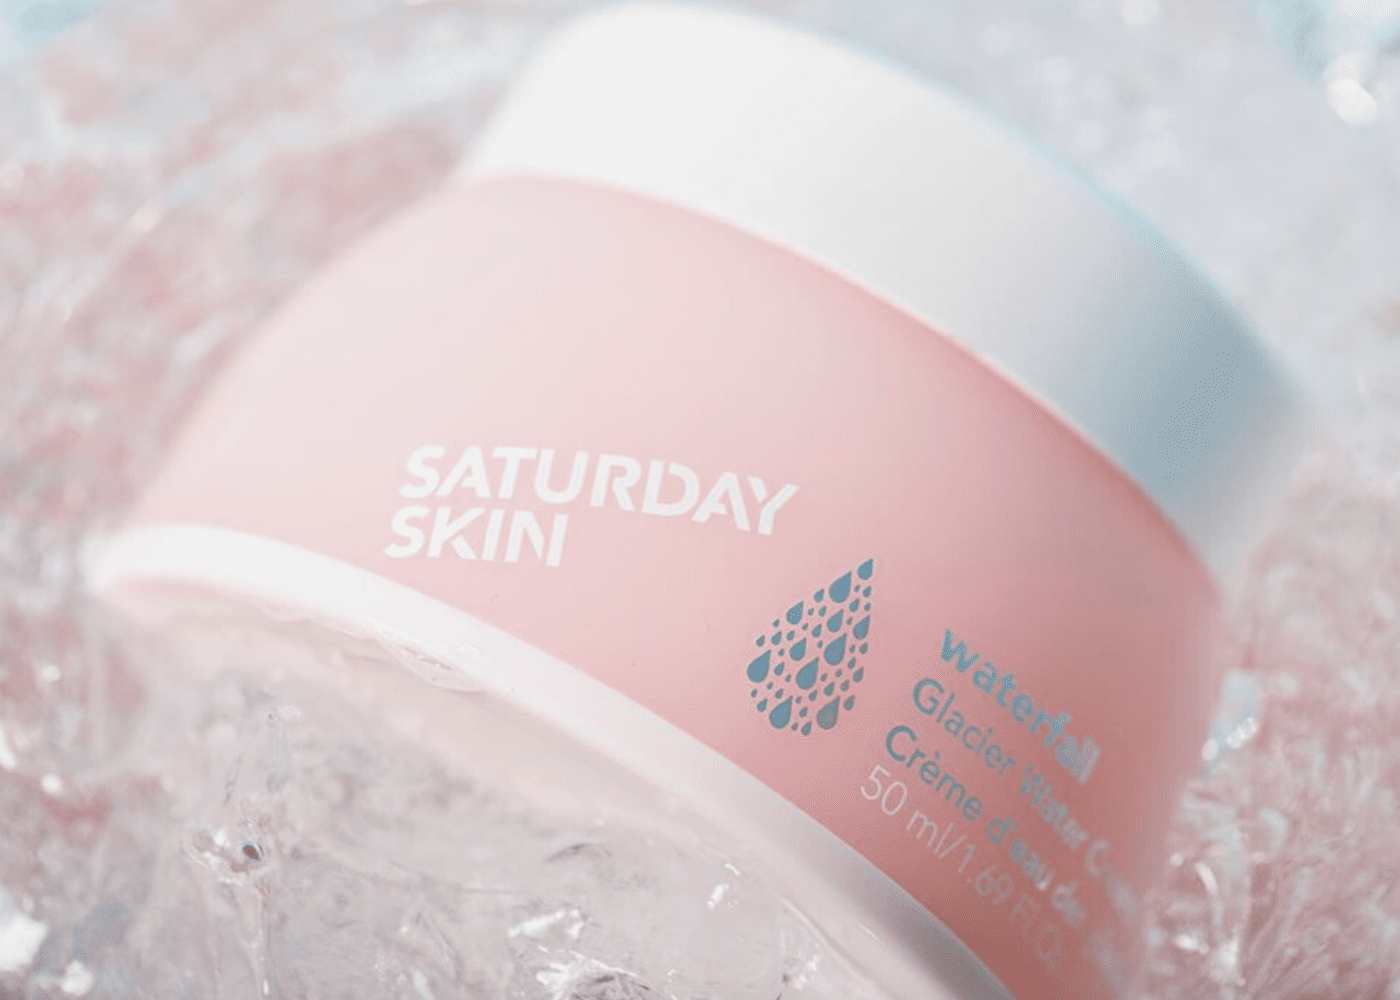 Saturday Skin Waterfall Glacier Water Cream | Honeycombers Singapore beauty review | April 2020